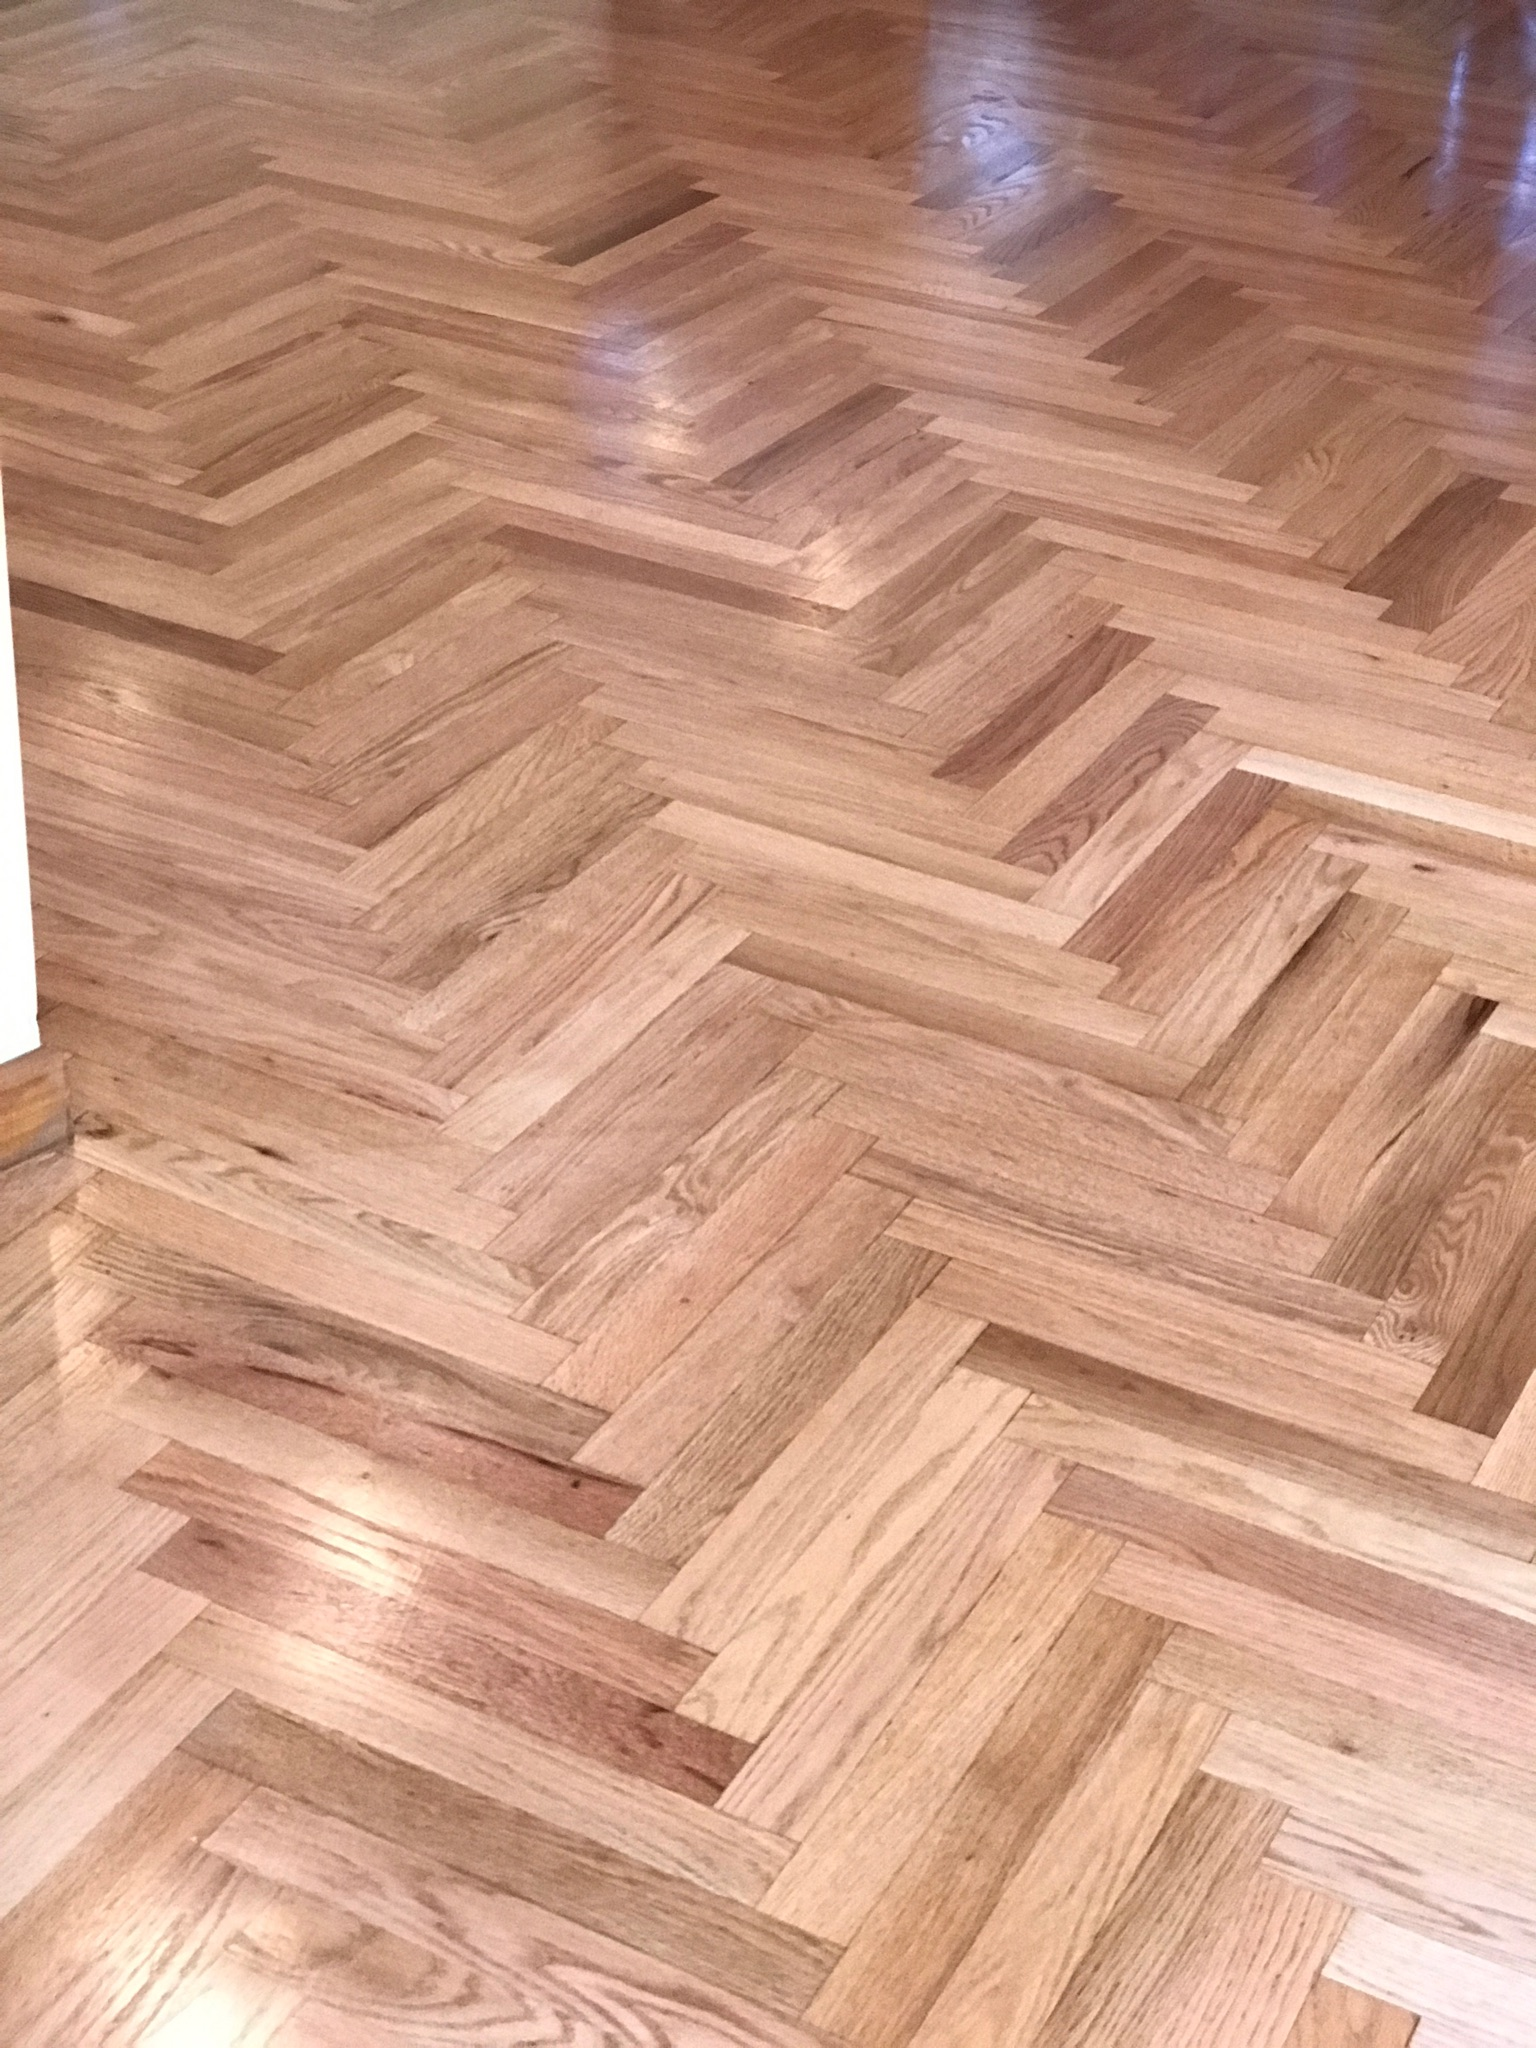 install-sand-finish-herringbone